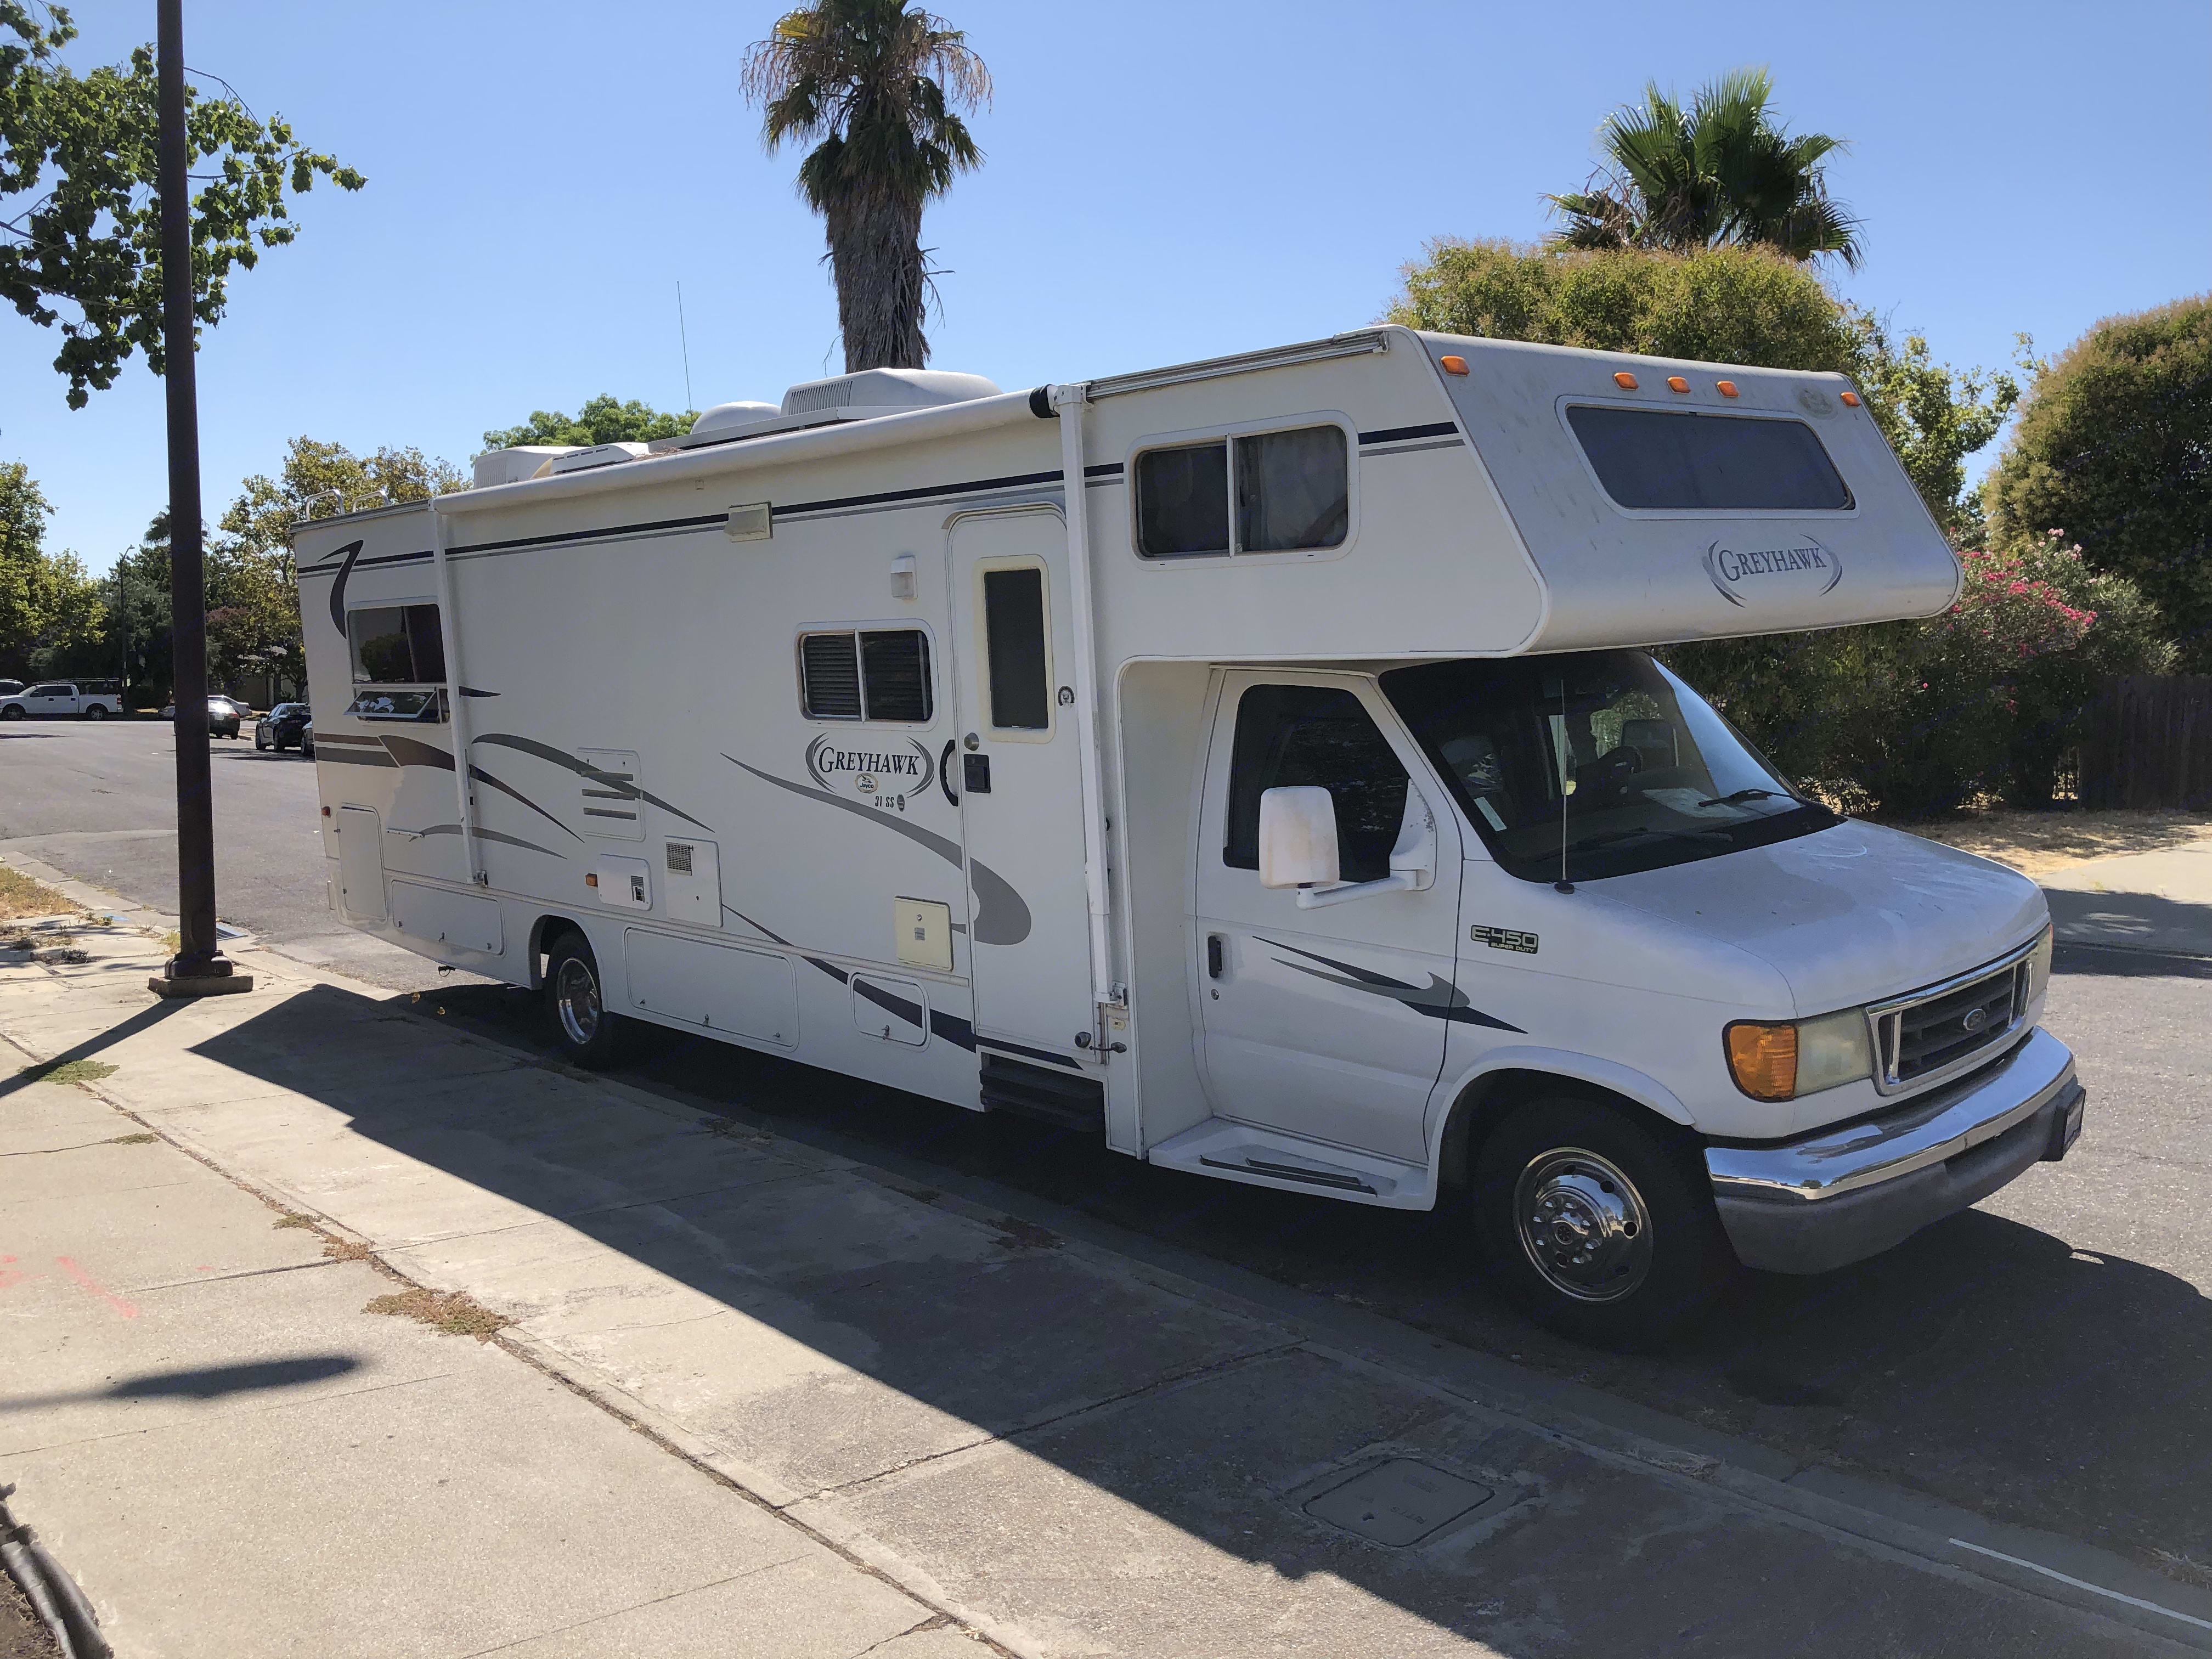 Ready to roll! There is a roll out awning on this side for extra shade. Jayco Greyhawk 2004